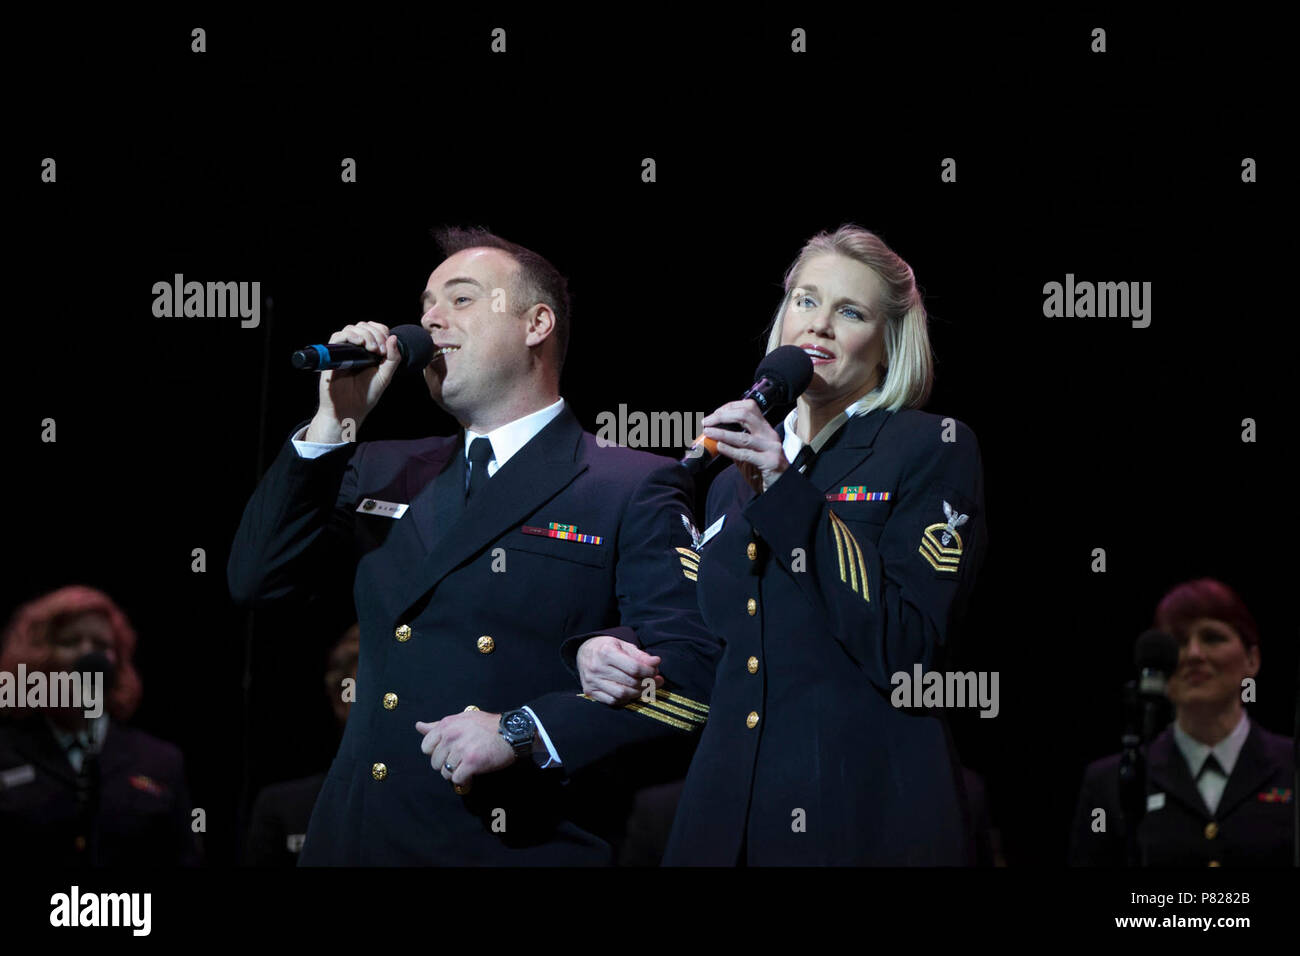 ALBANY N.Y. (April 11, 2016) Chief Musician Beth Revell and Musician 1st Class Michael Webb perform a duet with the Sea Chanters chorus. The Sea Chanters are on a 22-day tour of the northeastern United States. - Stock Image